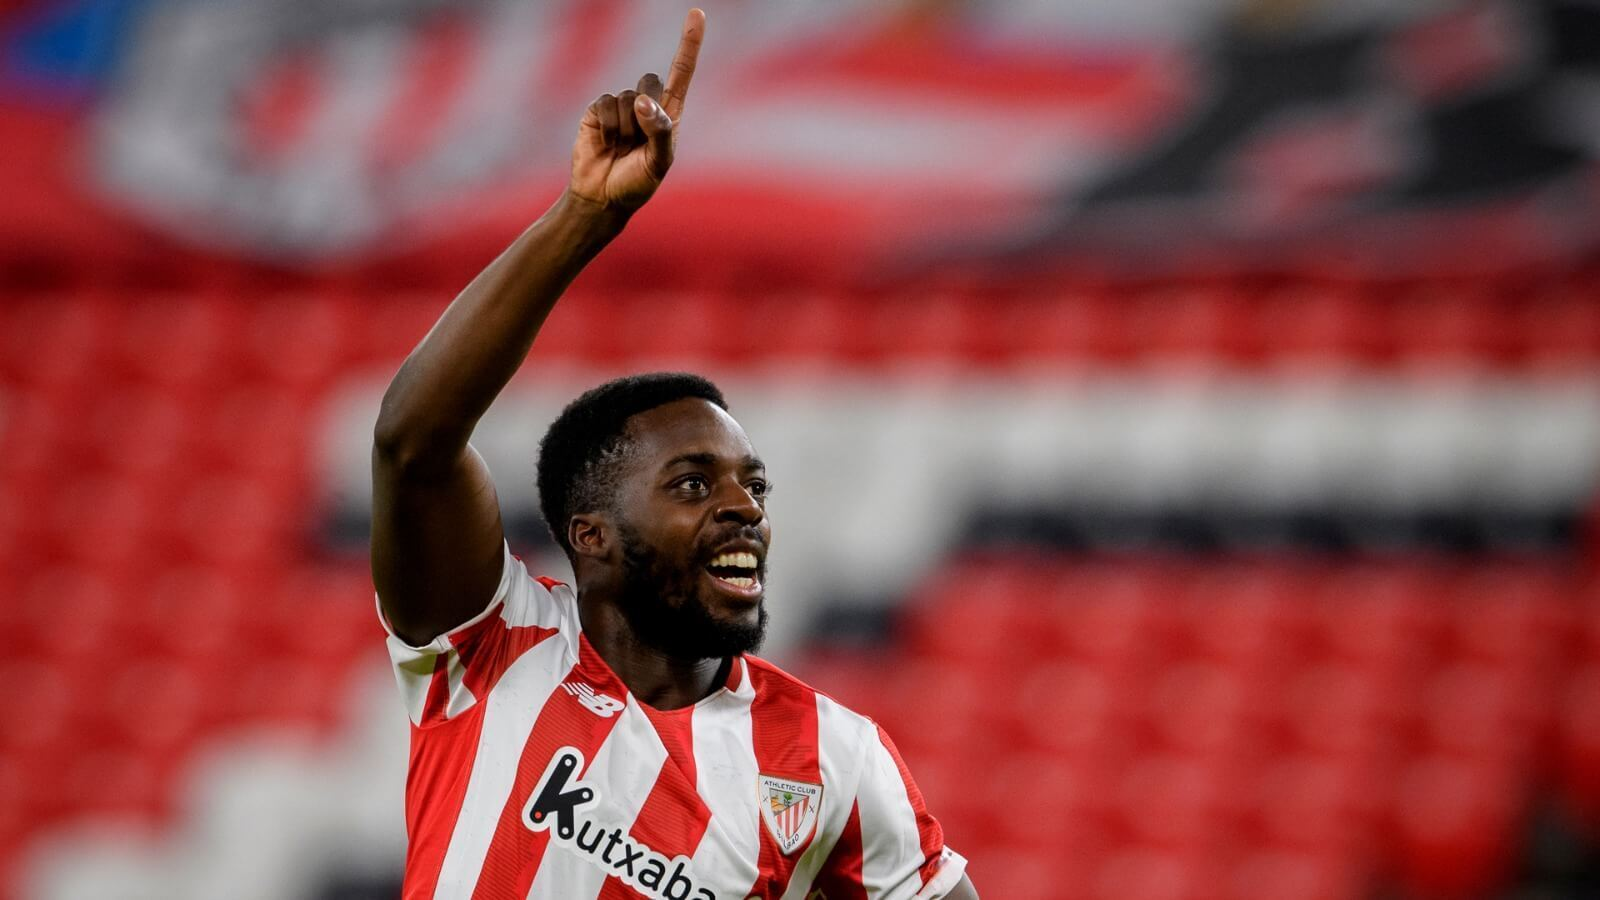 Inaki Williams enunciated his thoughts about his dual nationality